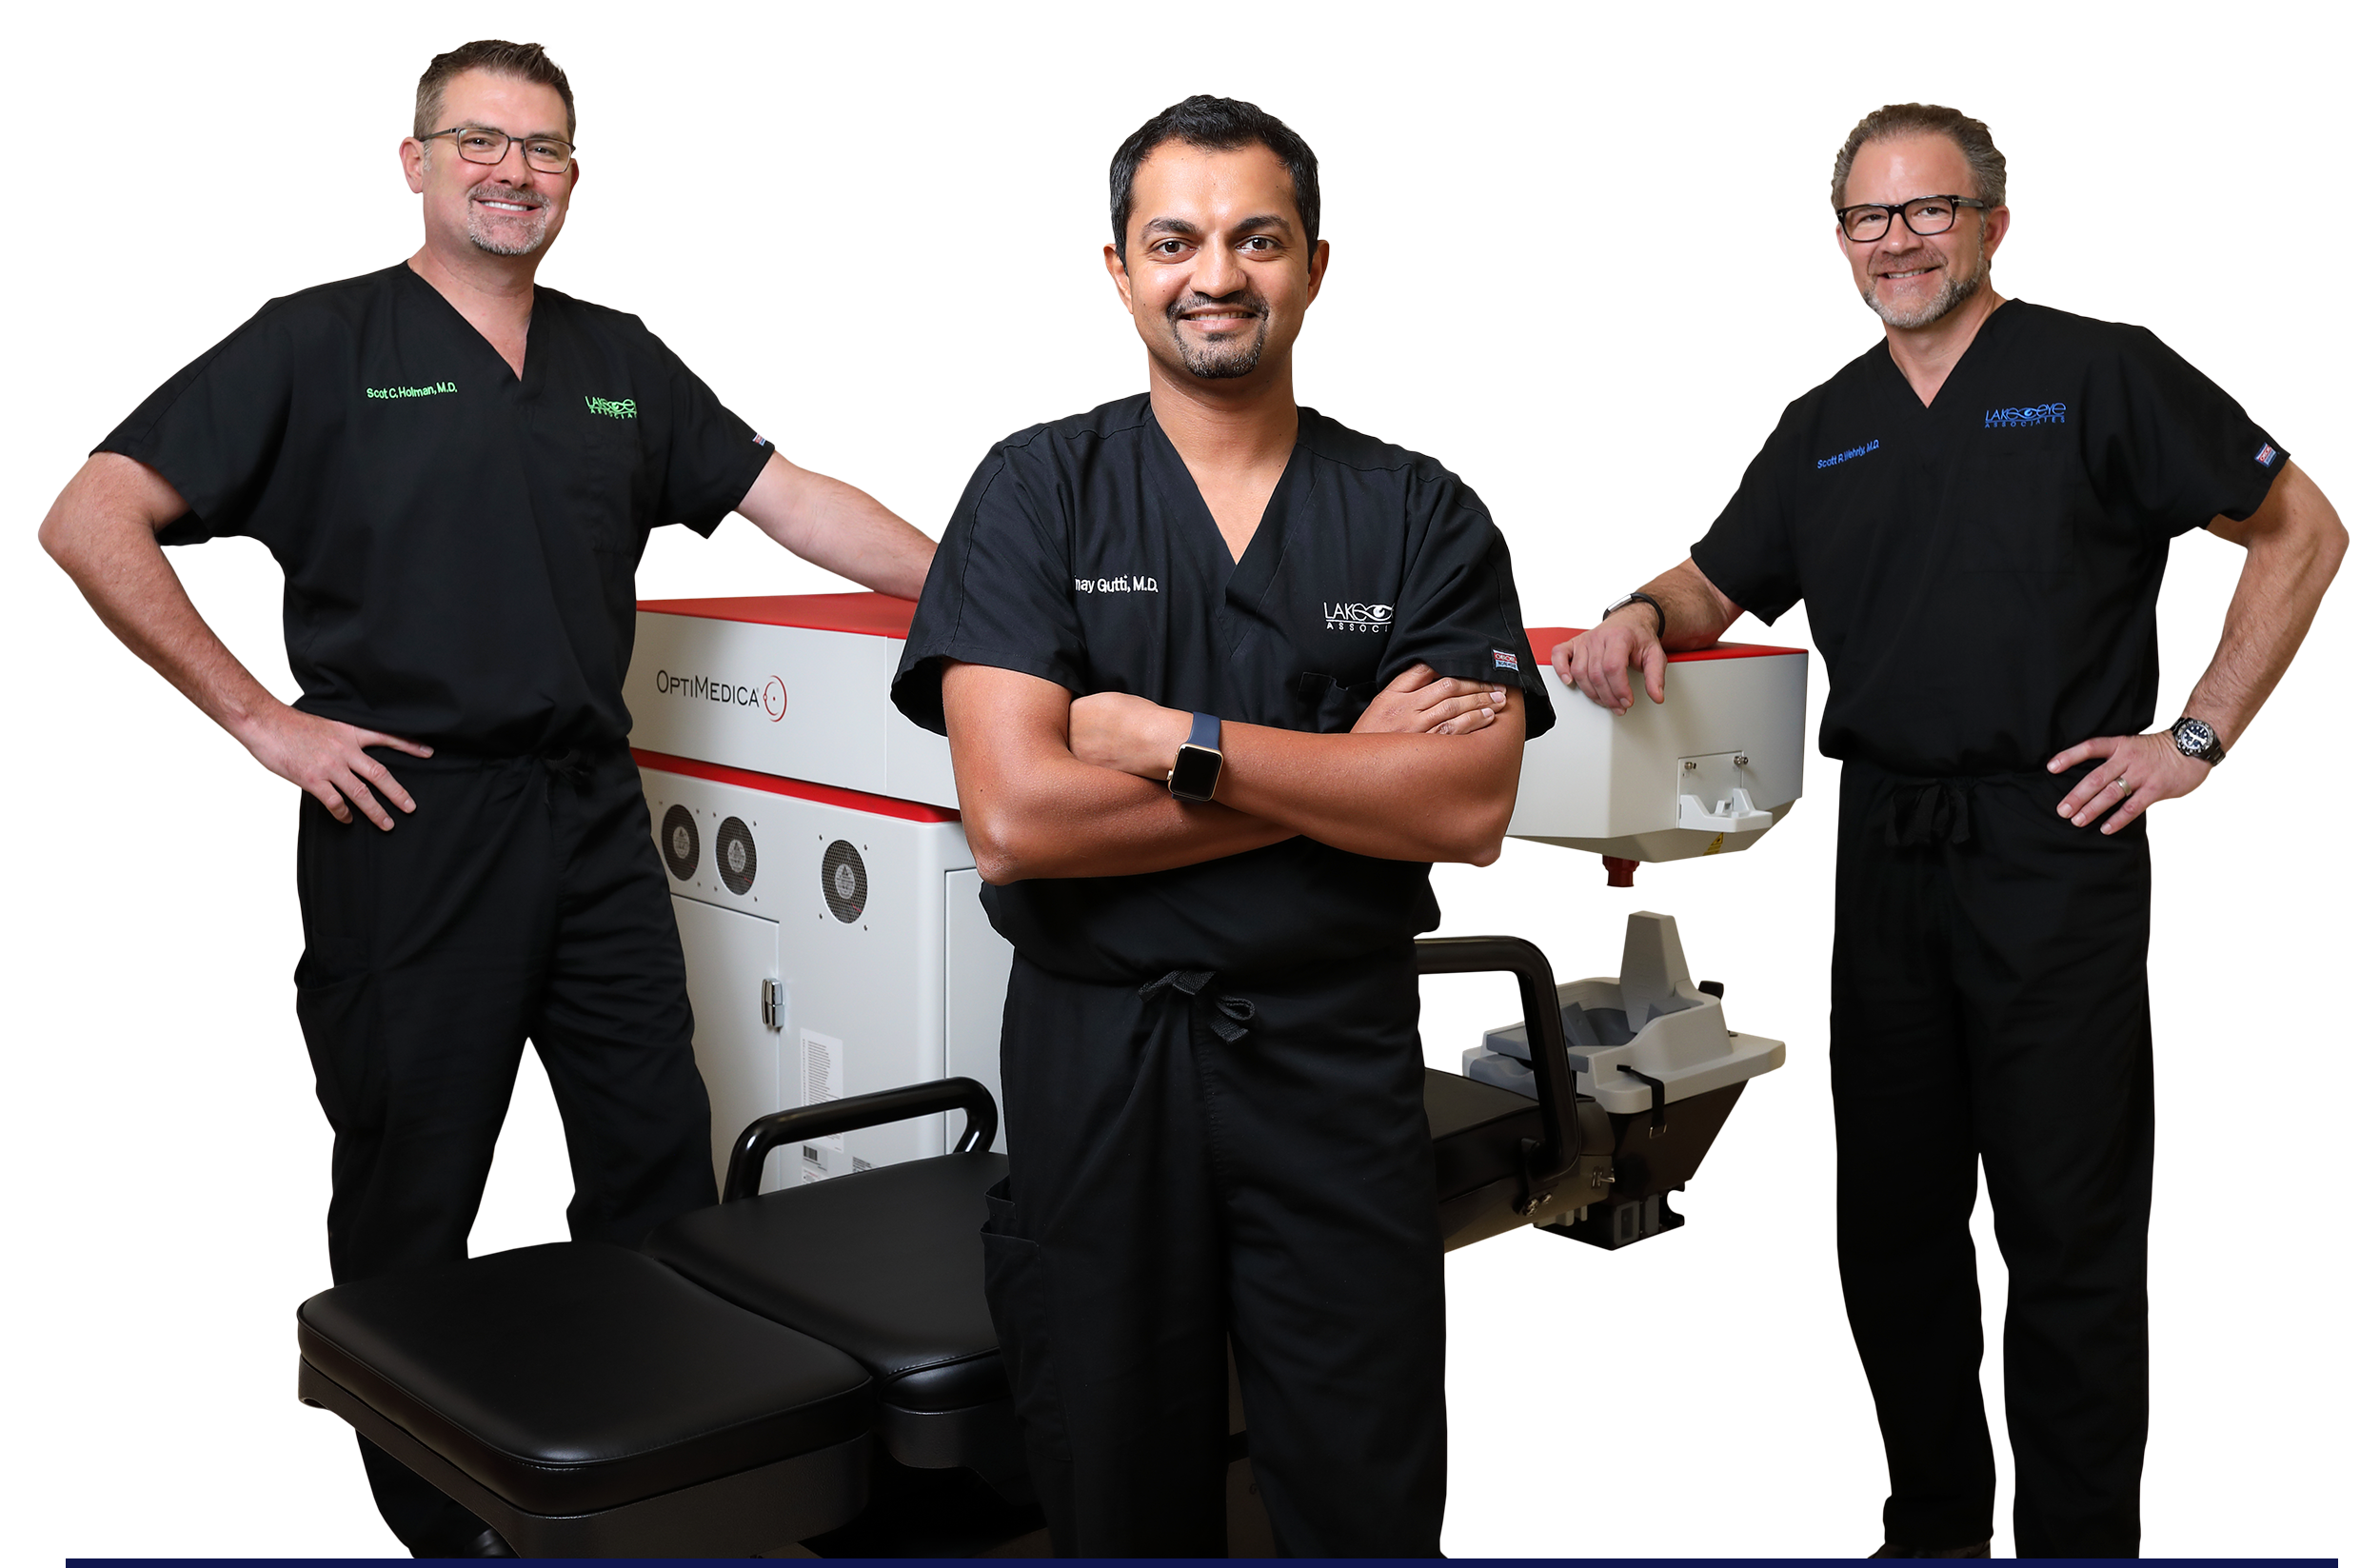 Lake Eye Board-certified cataract surgeons (from left to right): Dr. Scot Holman, Dr. Vinay Gutti and Dr. Scott Wehrly